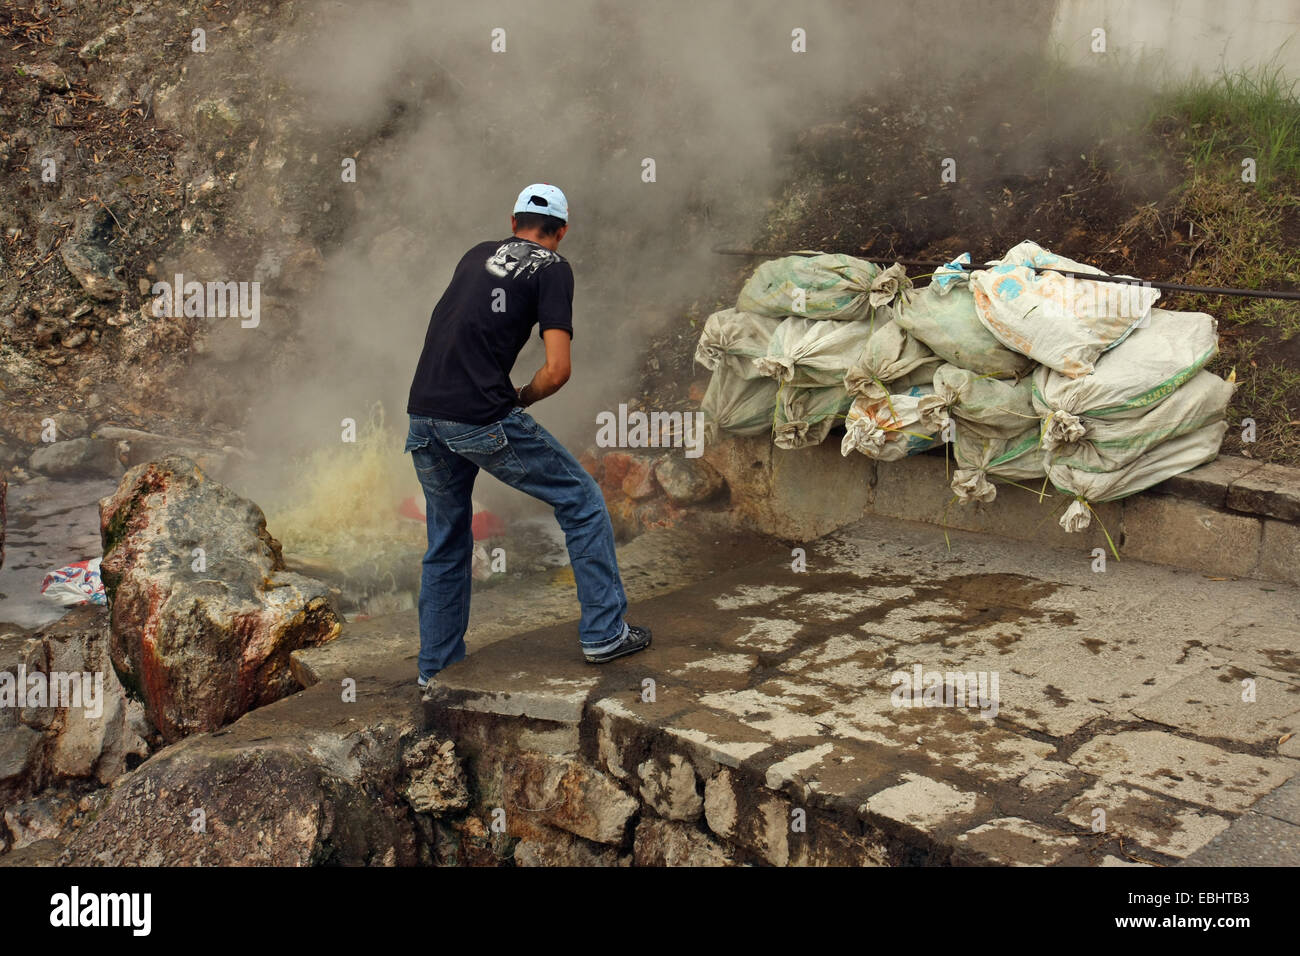 Man cooking sacs of corncobs in a hot spring with naturally boiling water in Furnas, island of São Miguel, Azores, Stock Photo